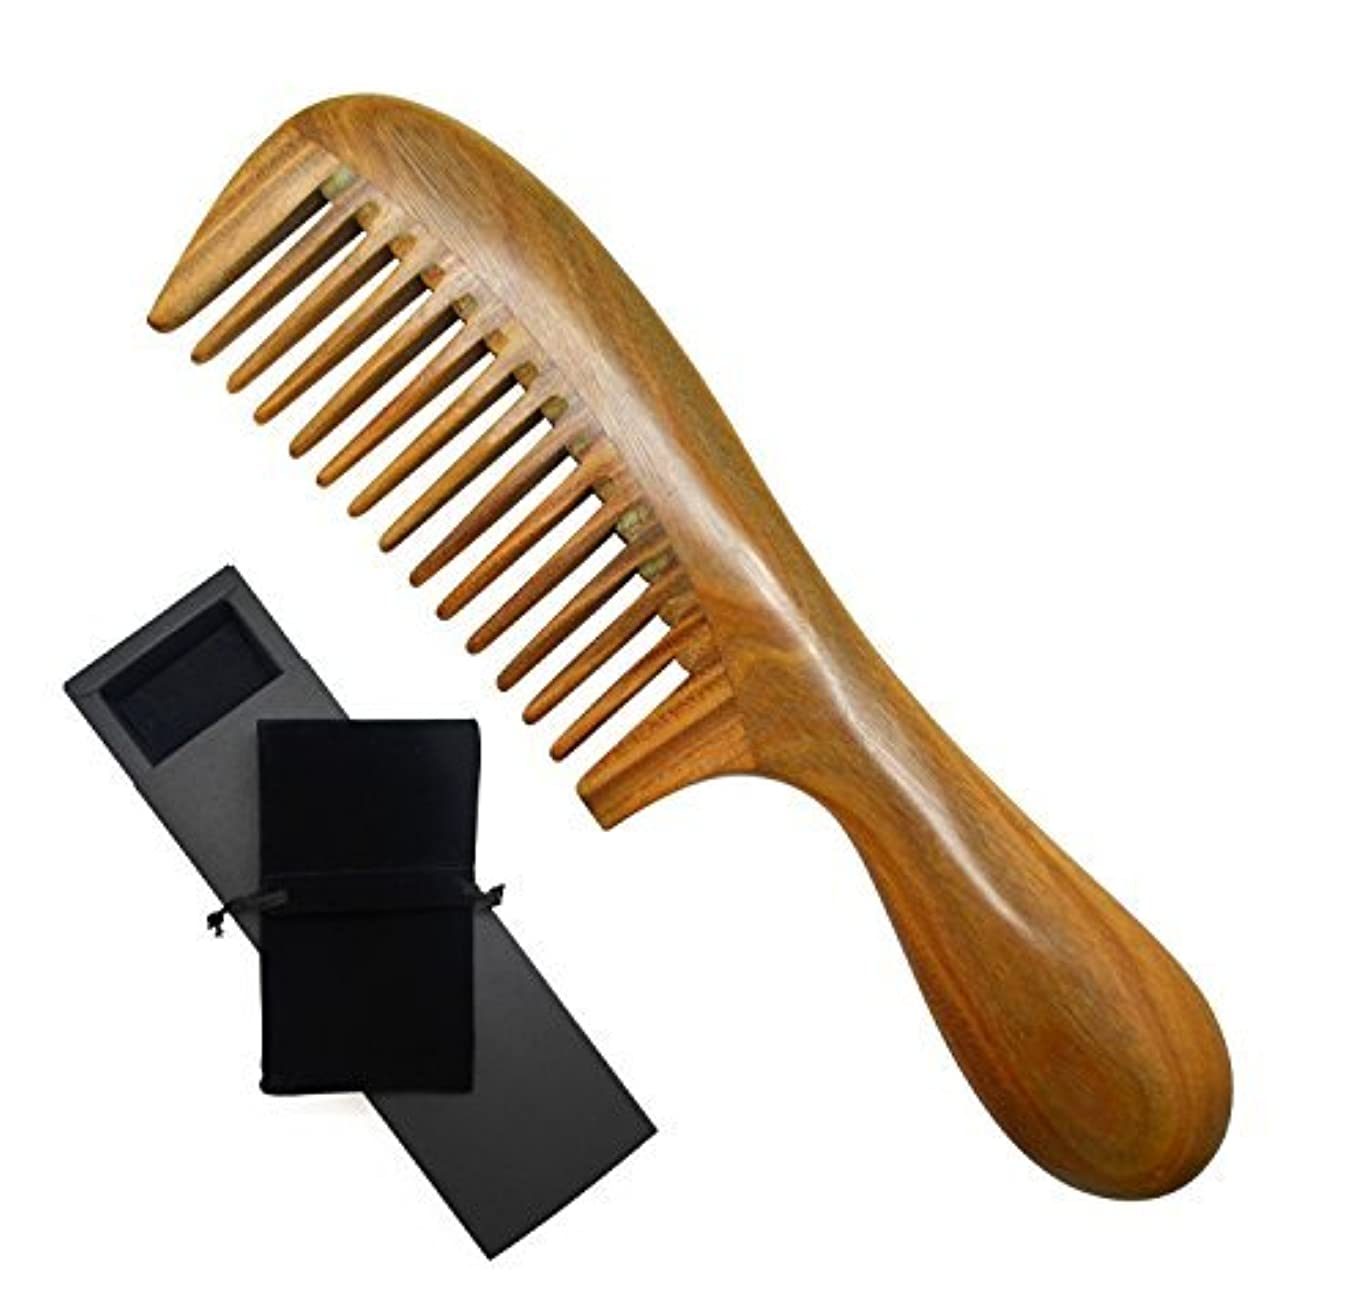 文句を言う亡命アグネスグレイMeta-C Natural Green Sandalwood Wooden Comb - NO SNAGS, NO TANGLE, NO STATIC (Short Handle - Wide Tooth) [並行輸入品]